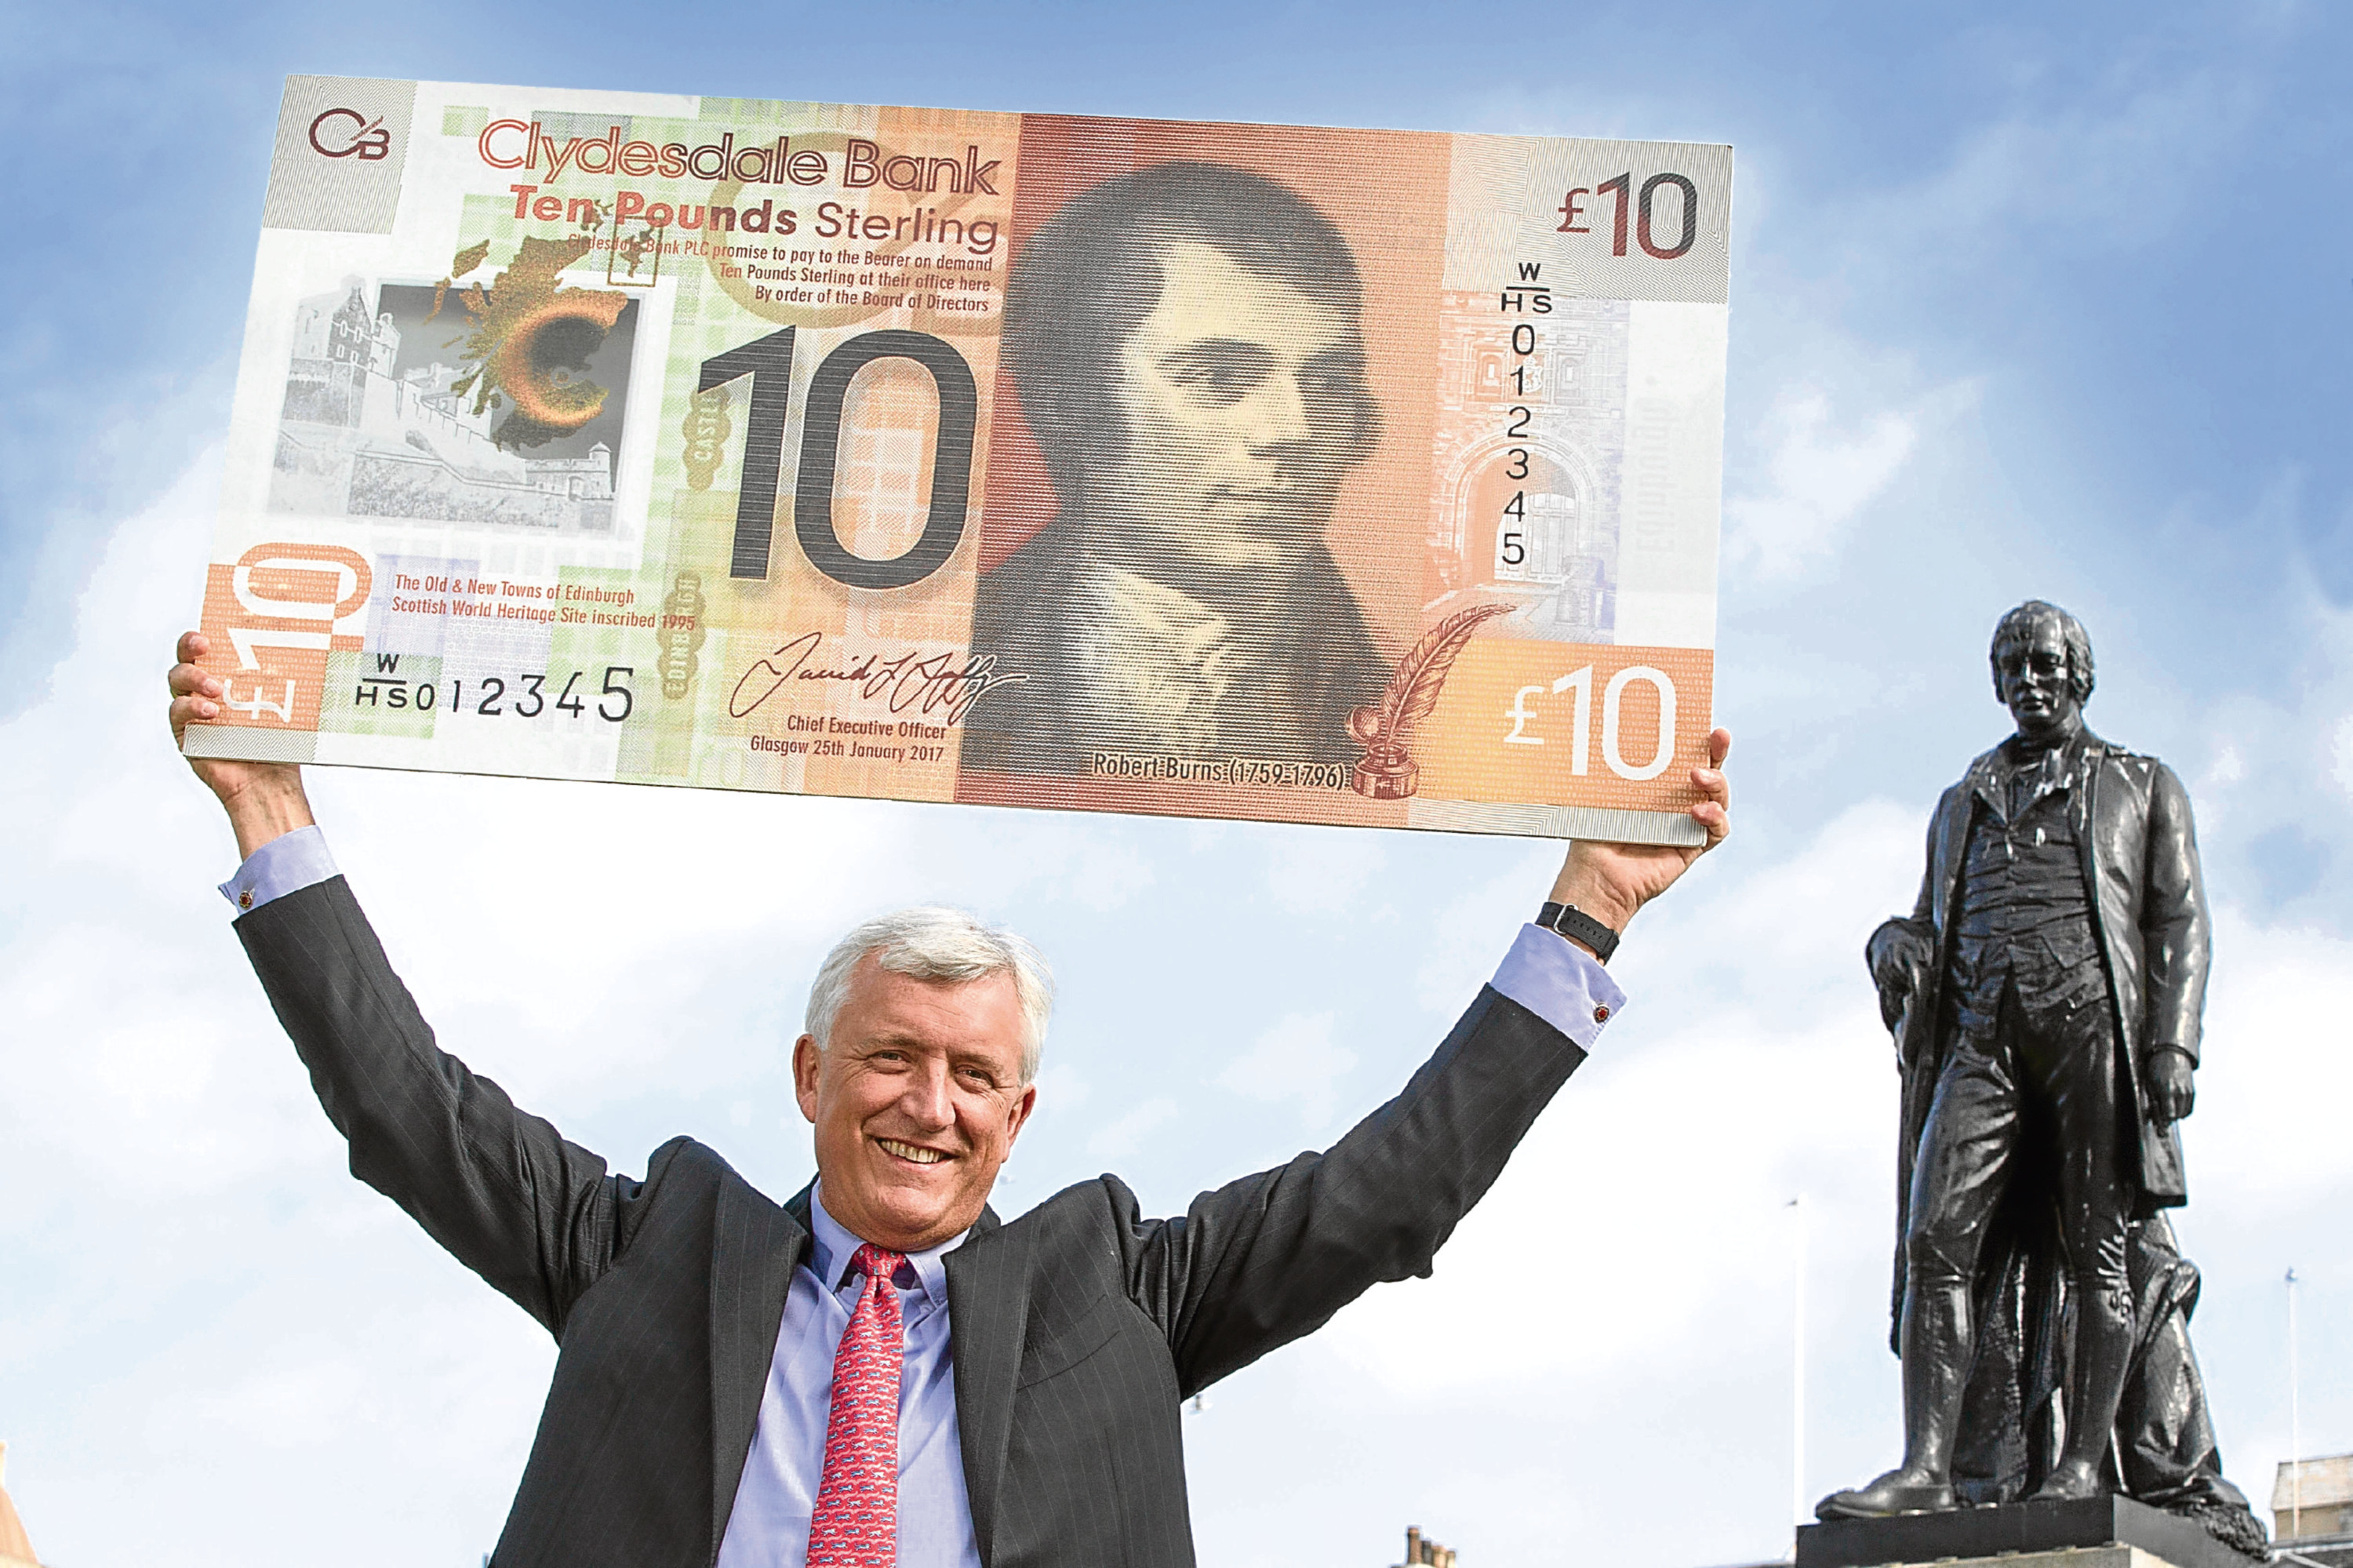 Clydesdale Bank CEO David Duffy with the bank's new £10 polymer bank note